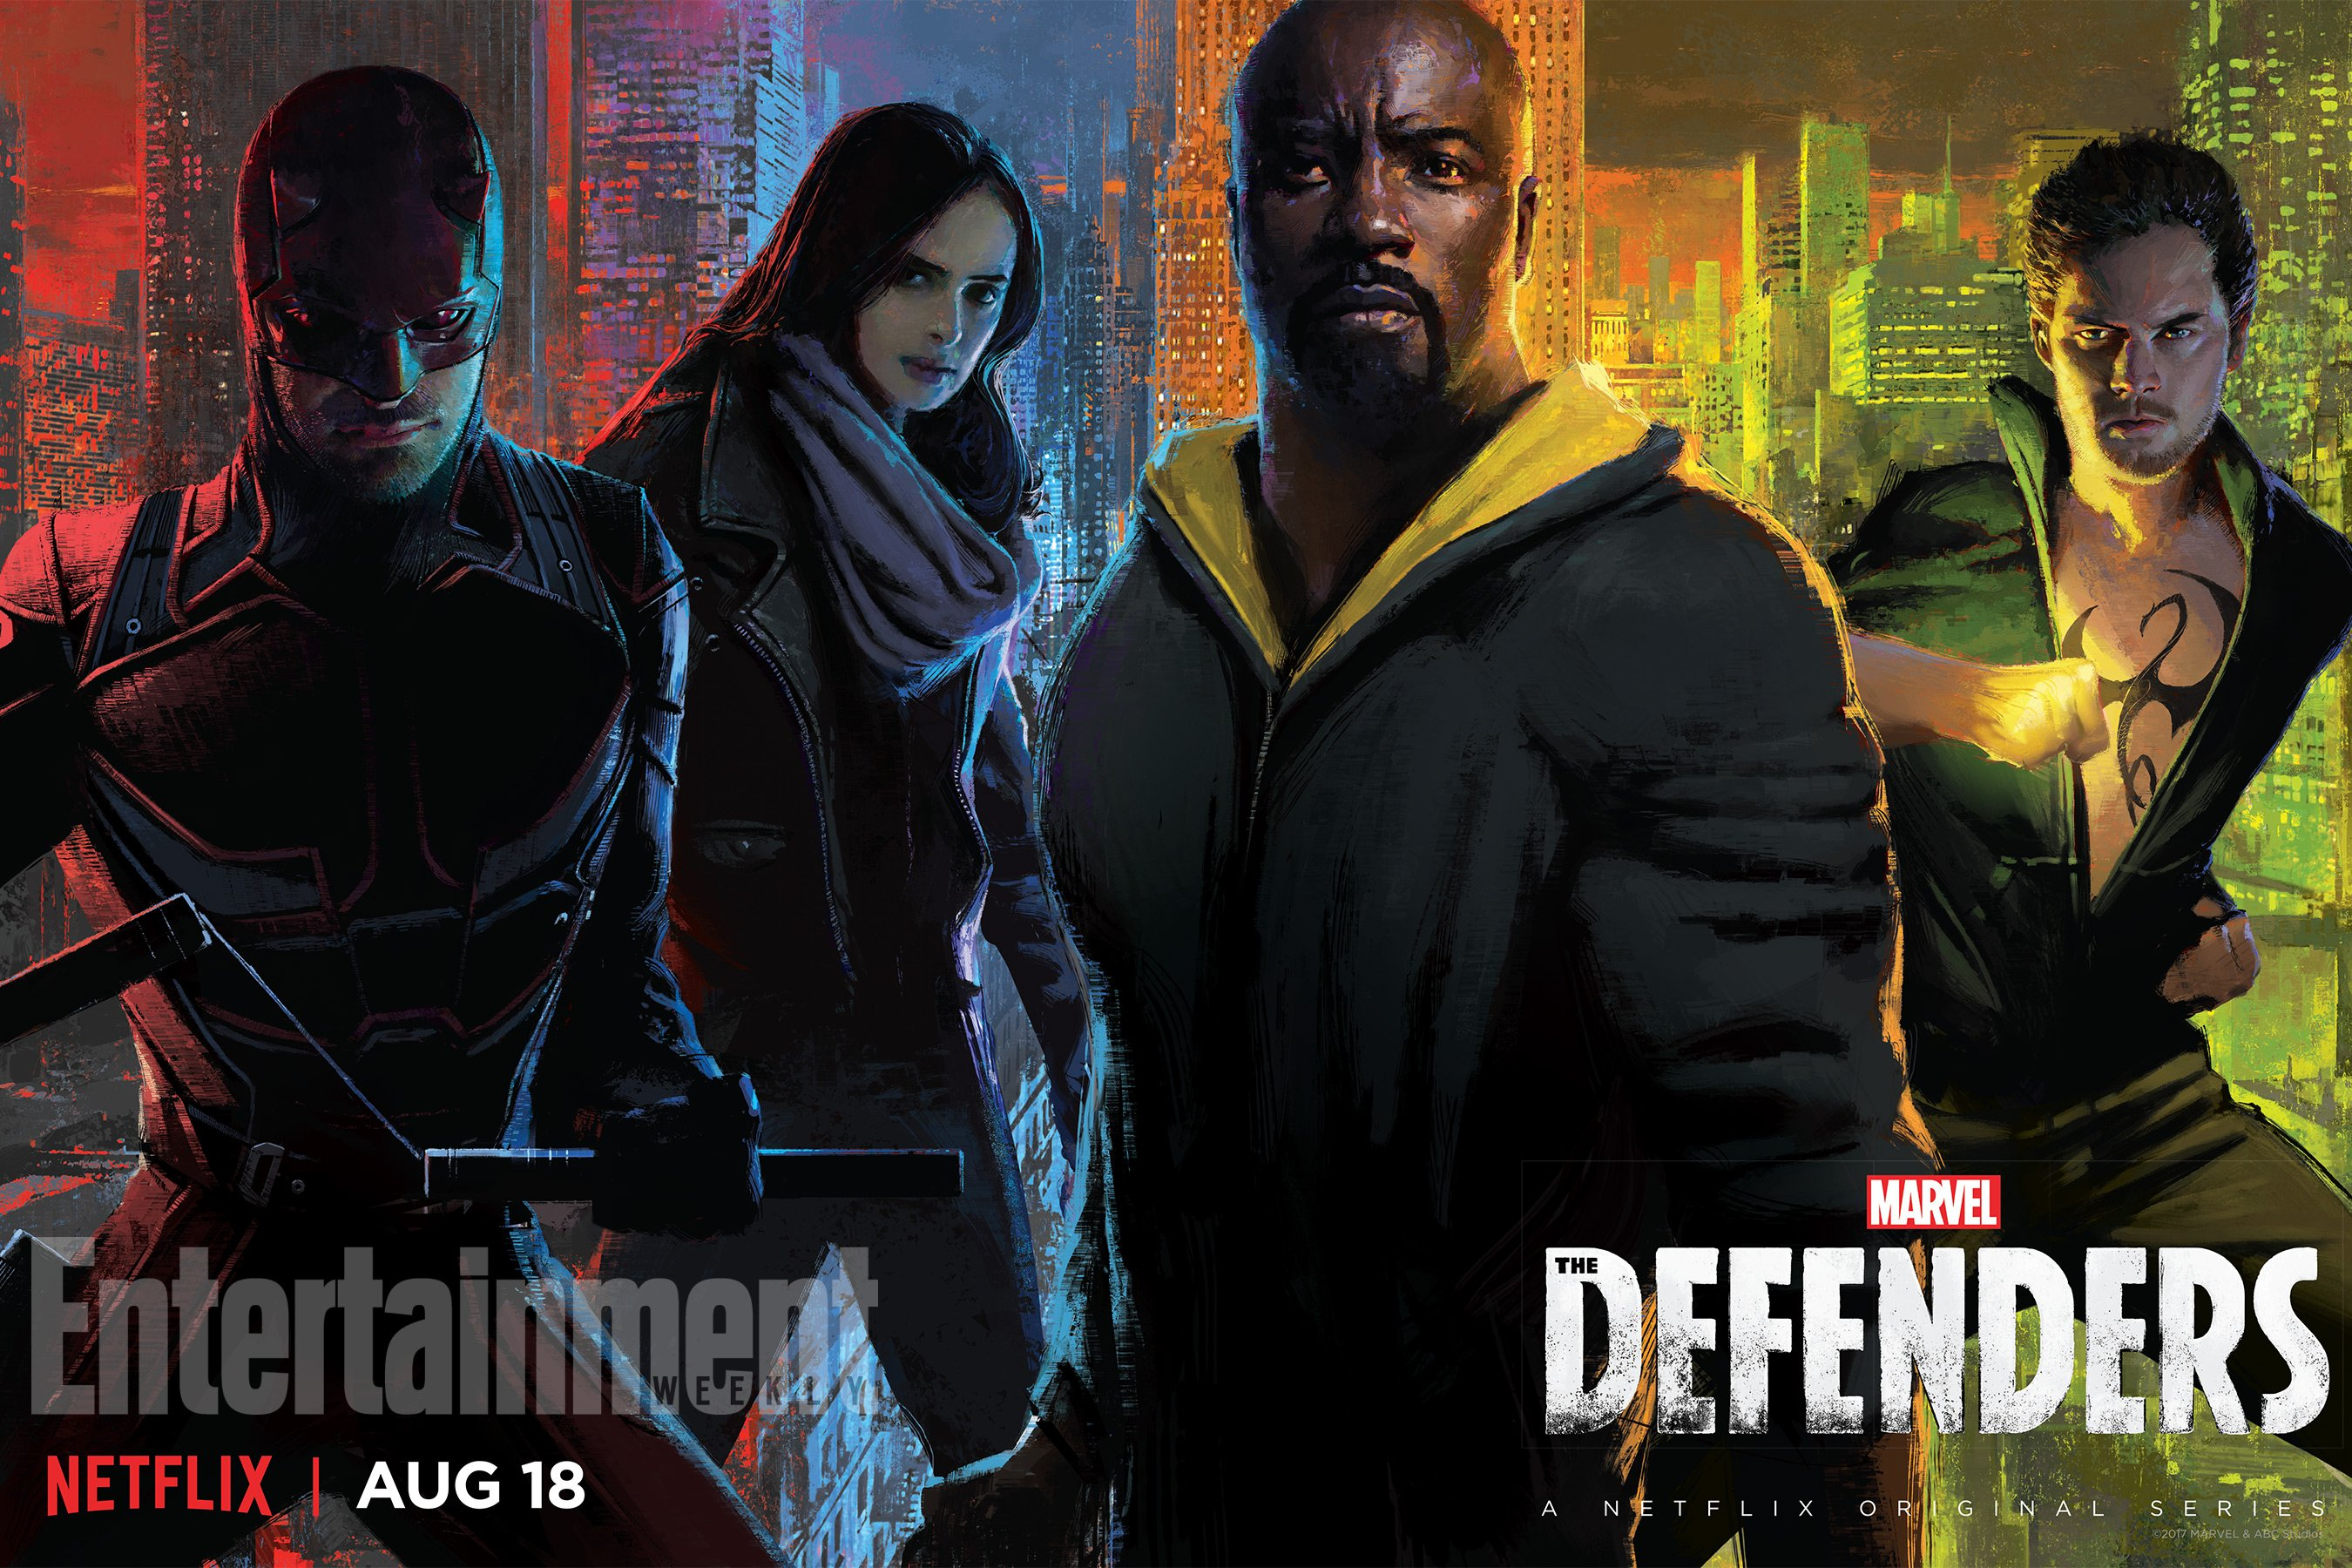 Stylish SDCC Poster For The Defenders Gathers Marvel's Street-Level Heroes